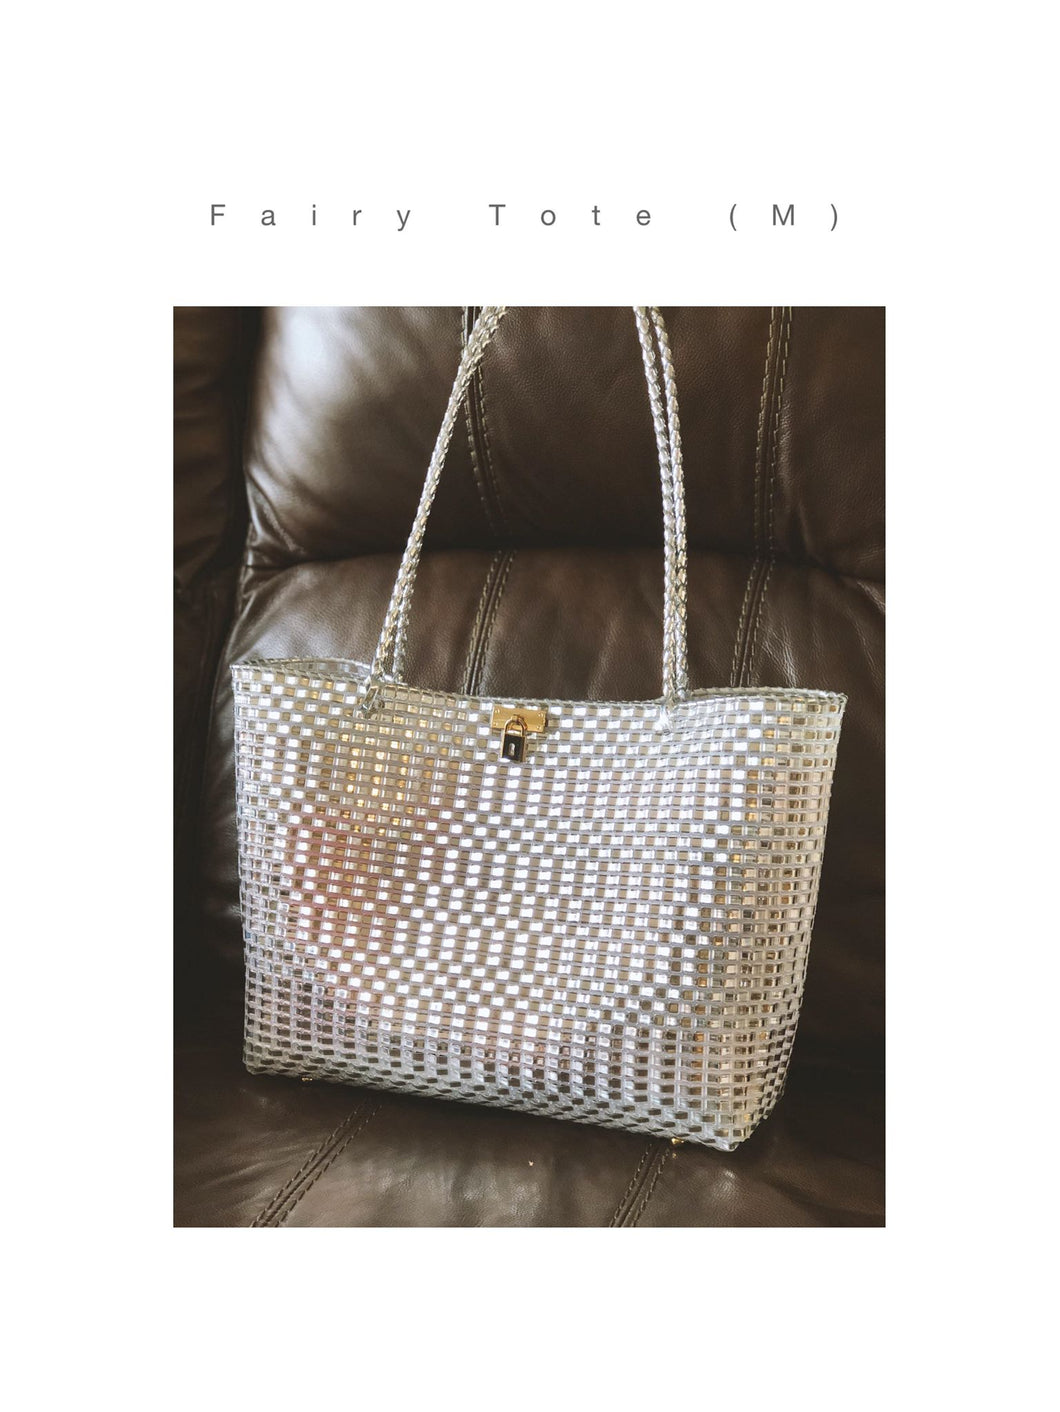 Fairy Tote - Medium Size Workshop